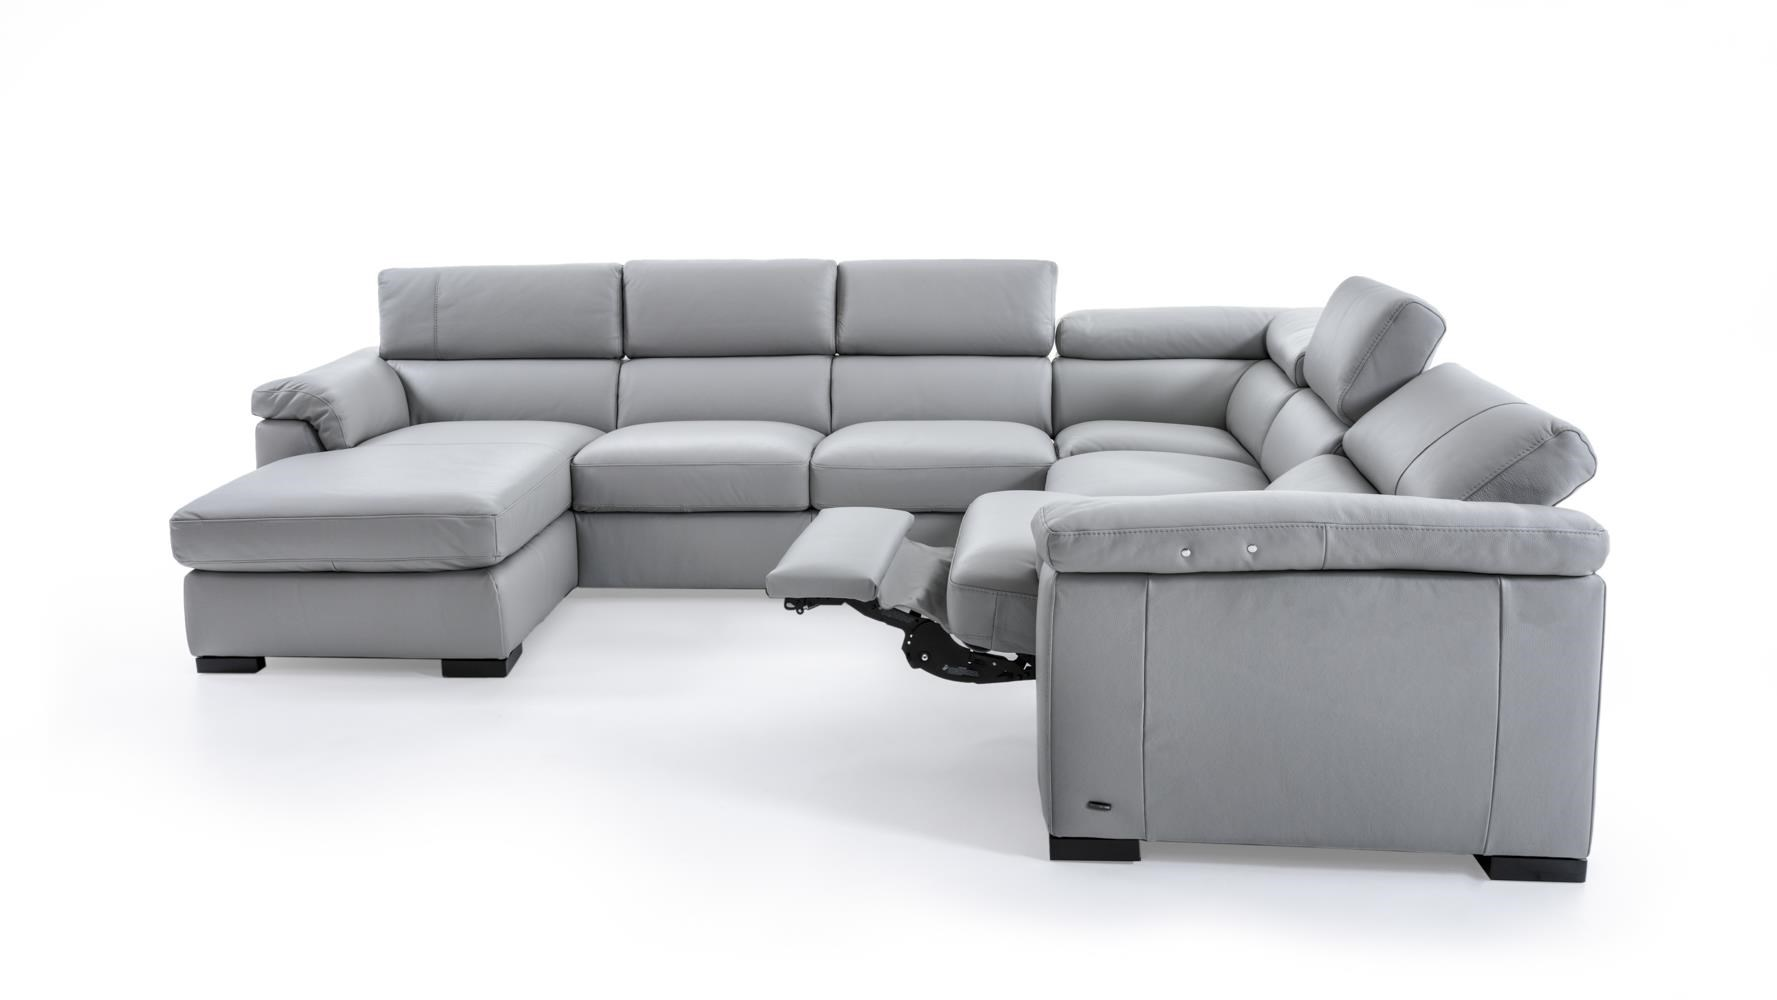 Natuzzi Editions B634 B634 Sect 1 Gray Contemporary